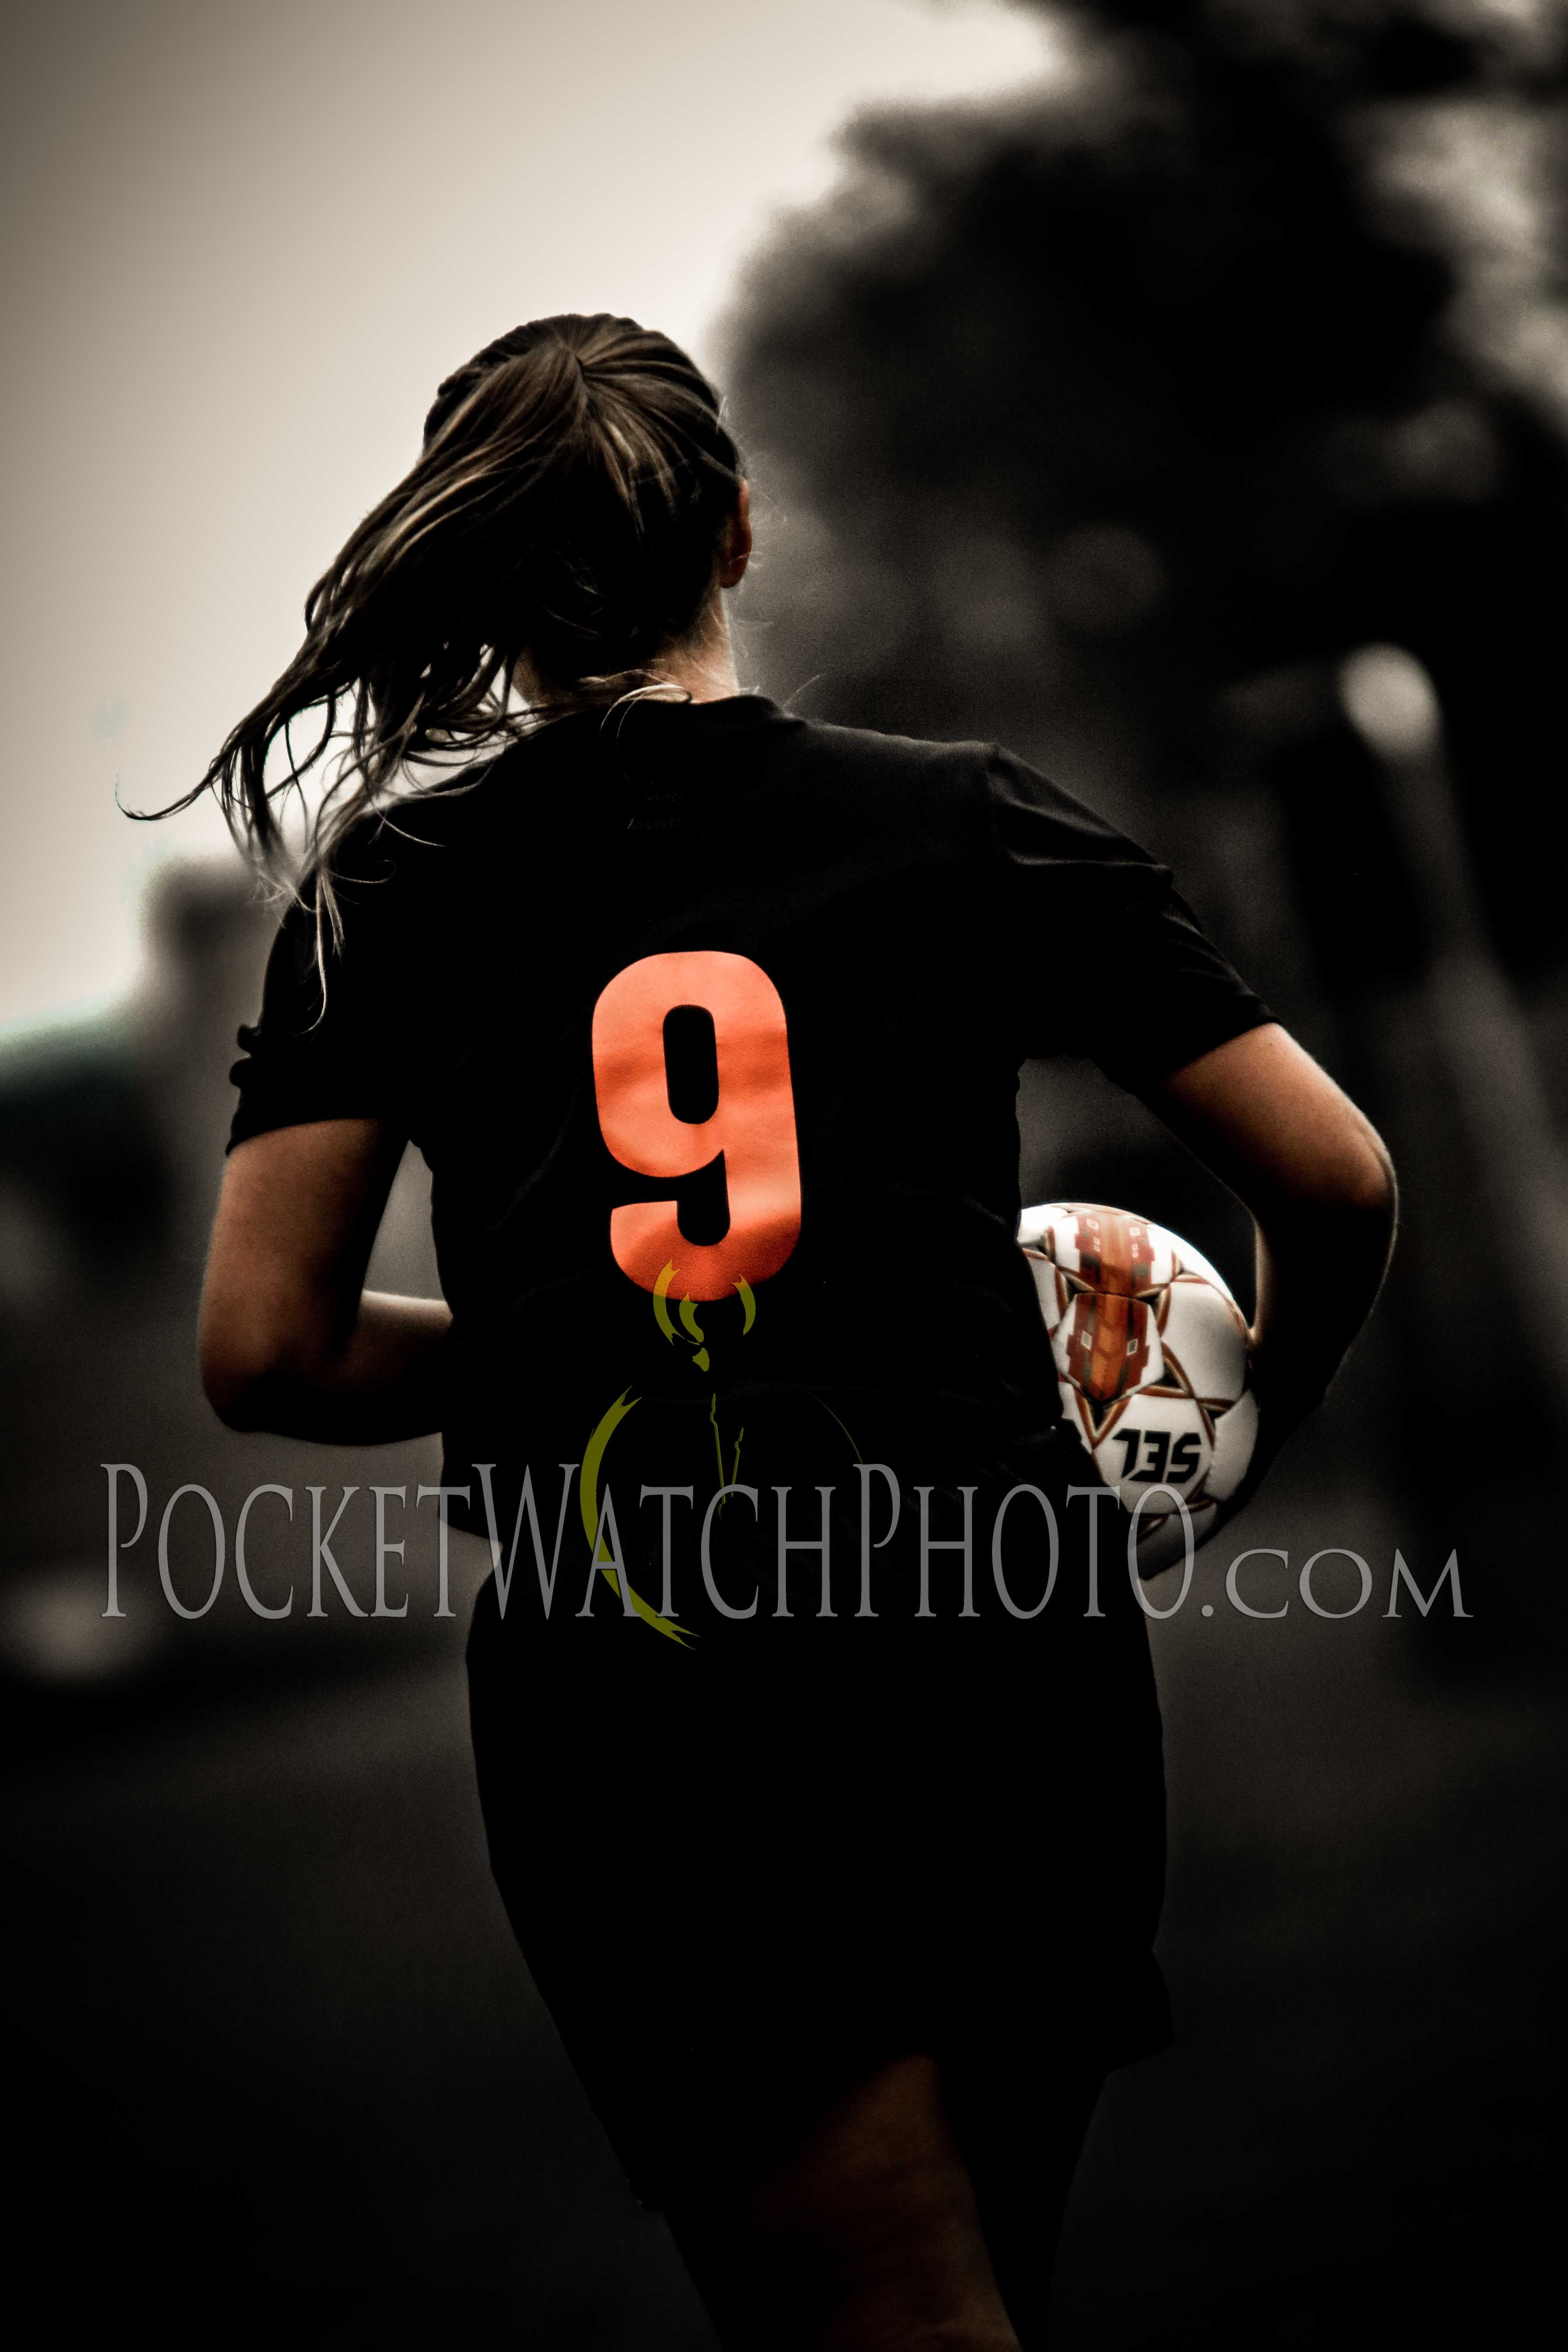 High School Girls Soccer Photography More Photos At Www Pocketwatchphoto Com St Charles Saints Girls Soccer Photography Soccer Photography Girls Soccer